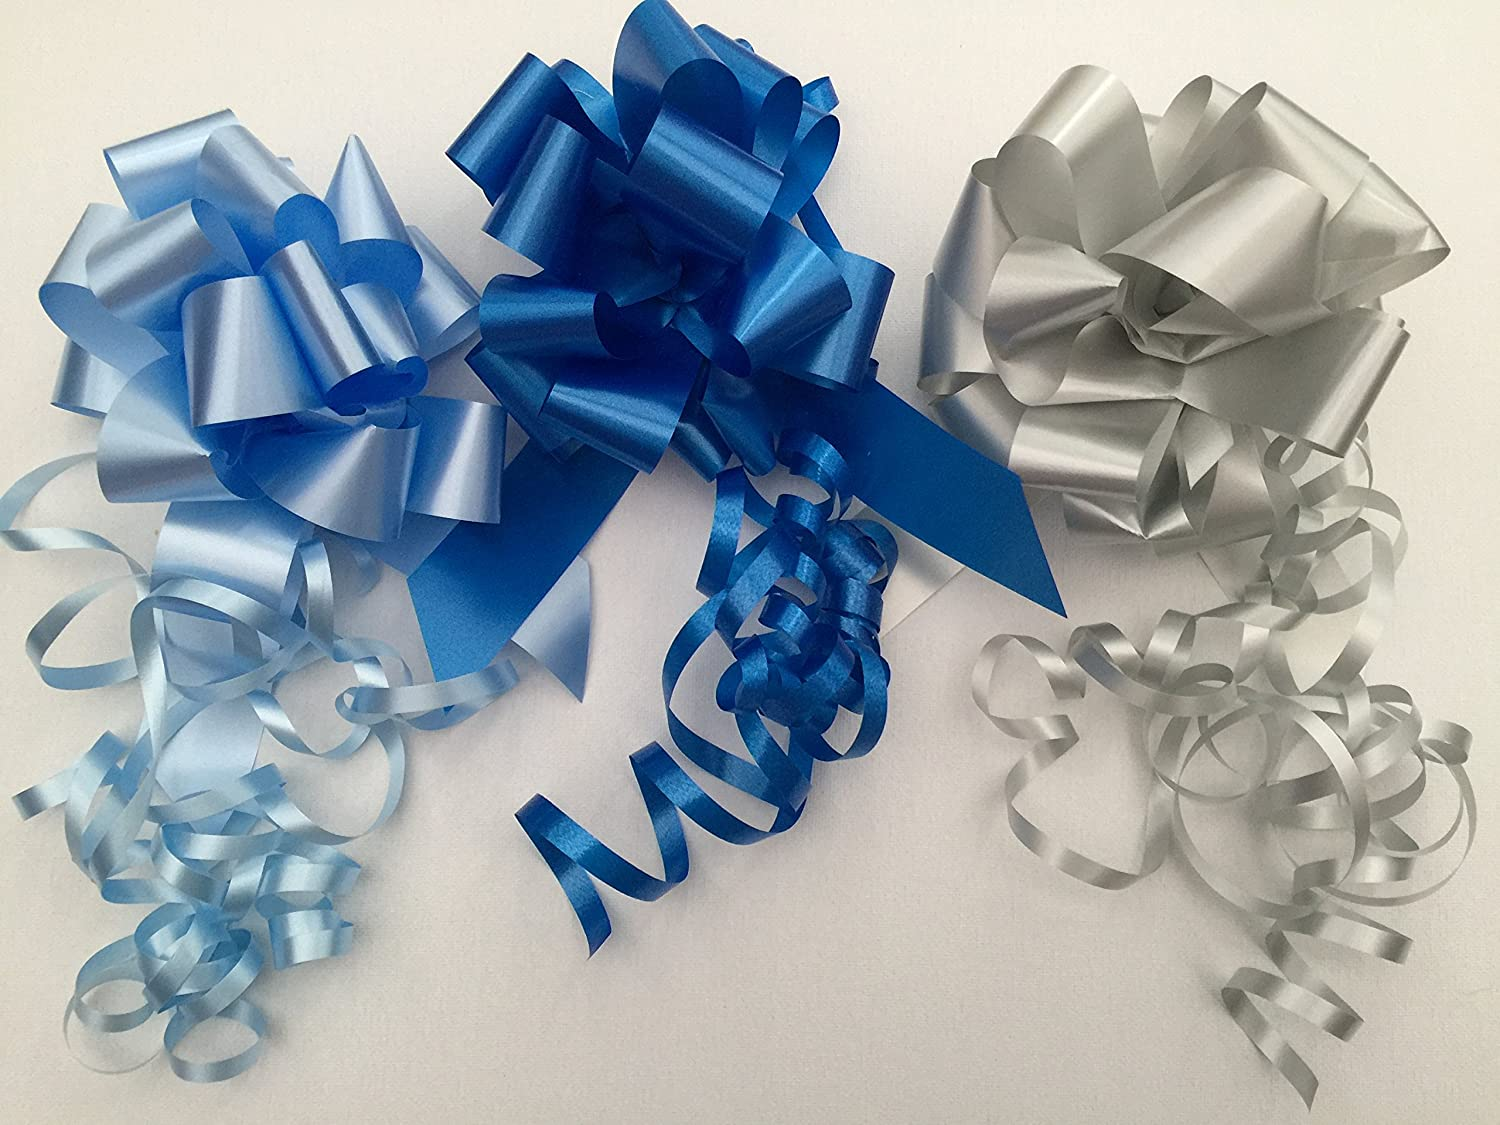 31mm PULL BOW pack 3 Astic Group - Light Blue,Royal Blue, Silver colours as picture (sent flat packed) DIY-Gift-Baskets